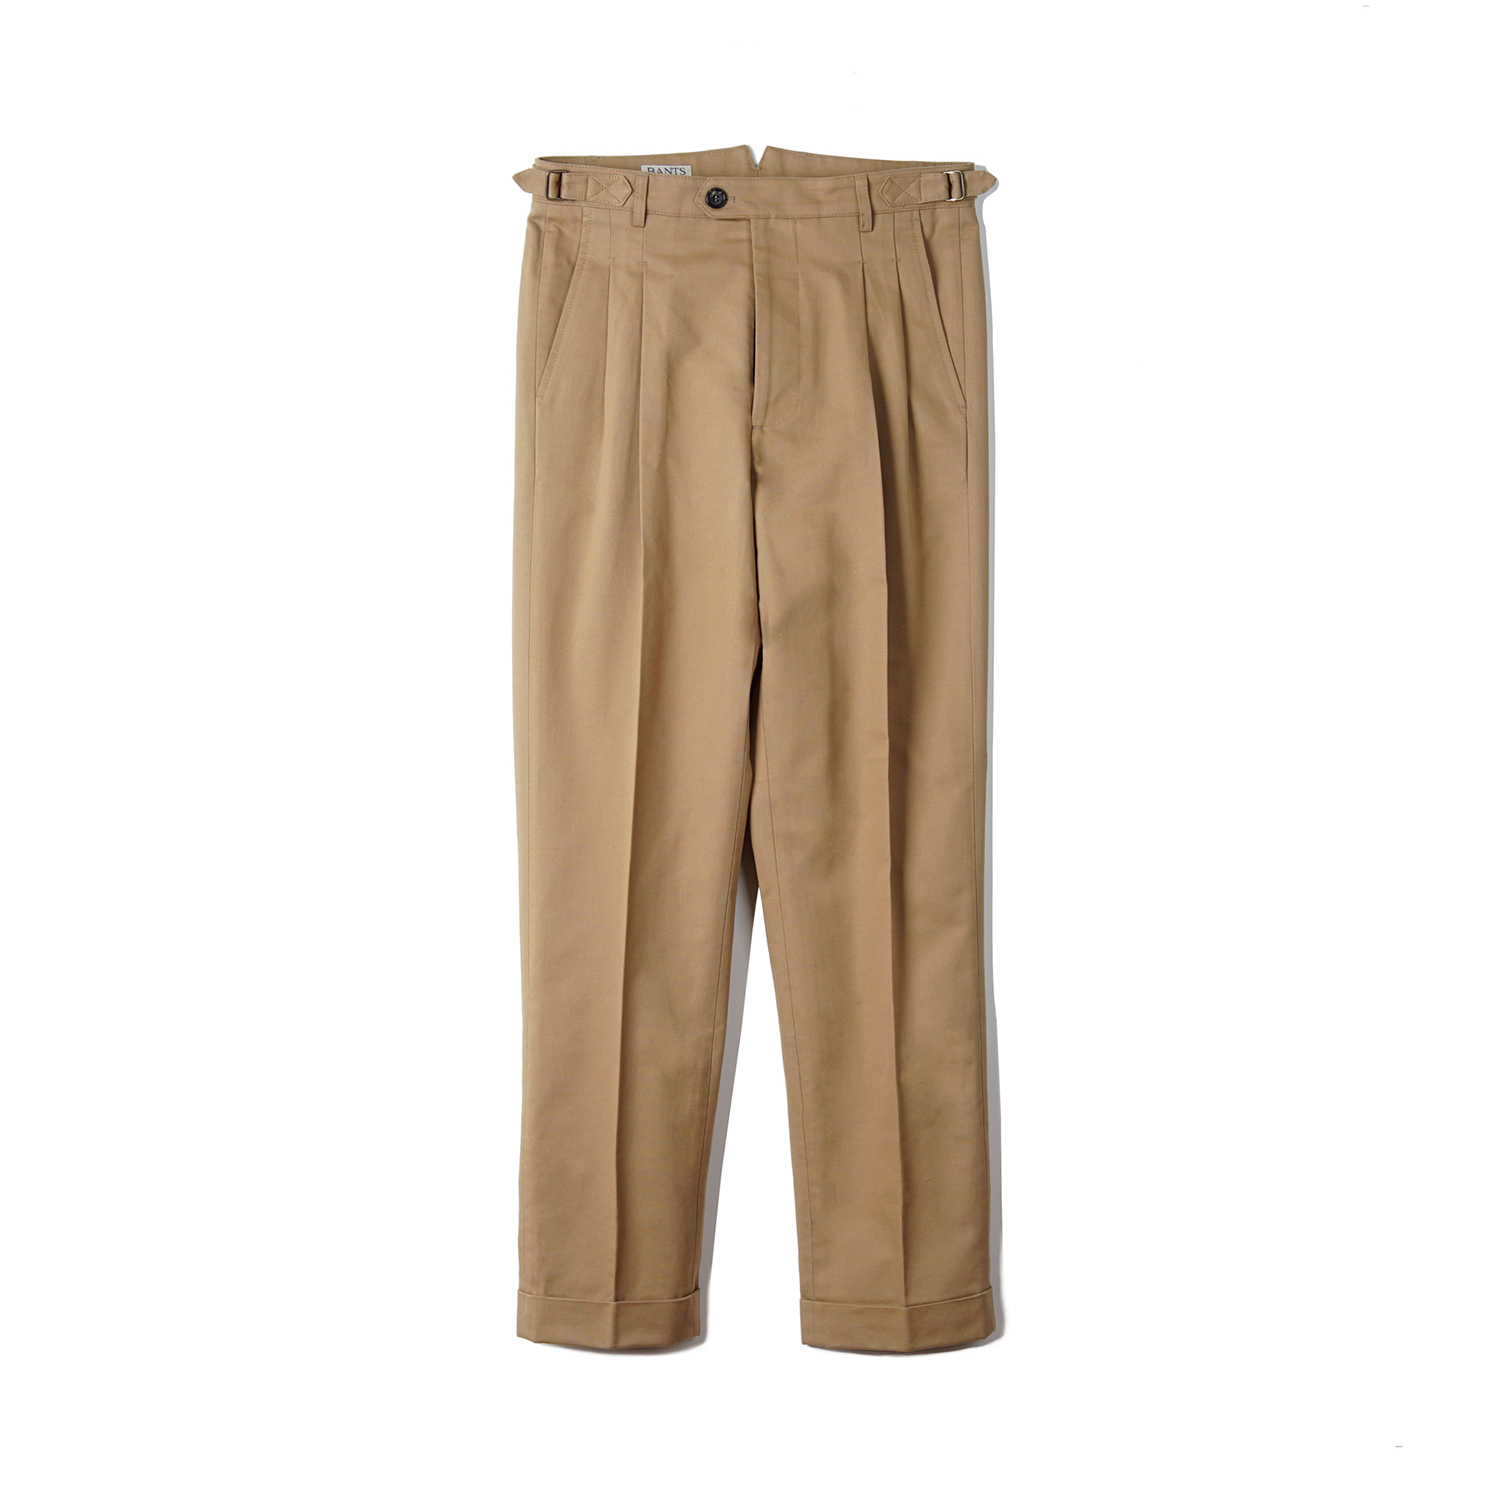 BTS Cotton Two-tuck Pants - Khaki